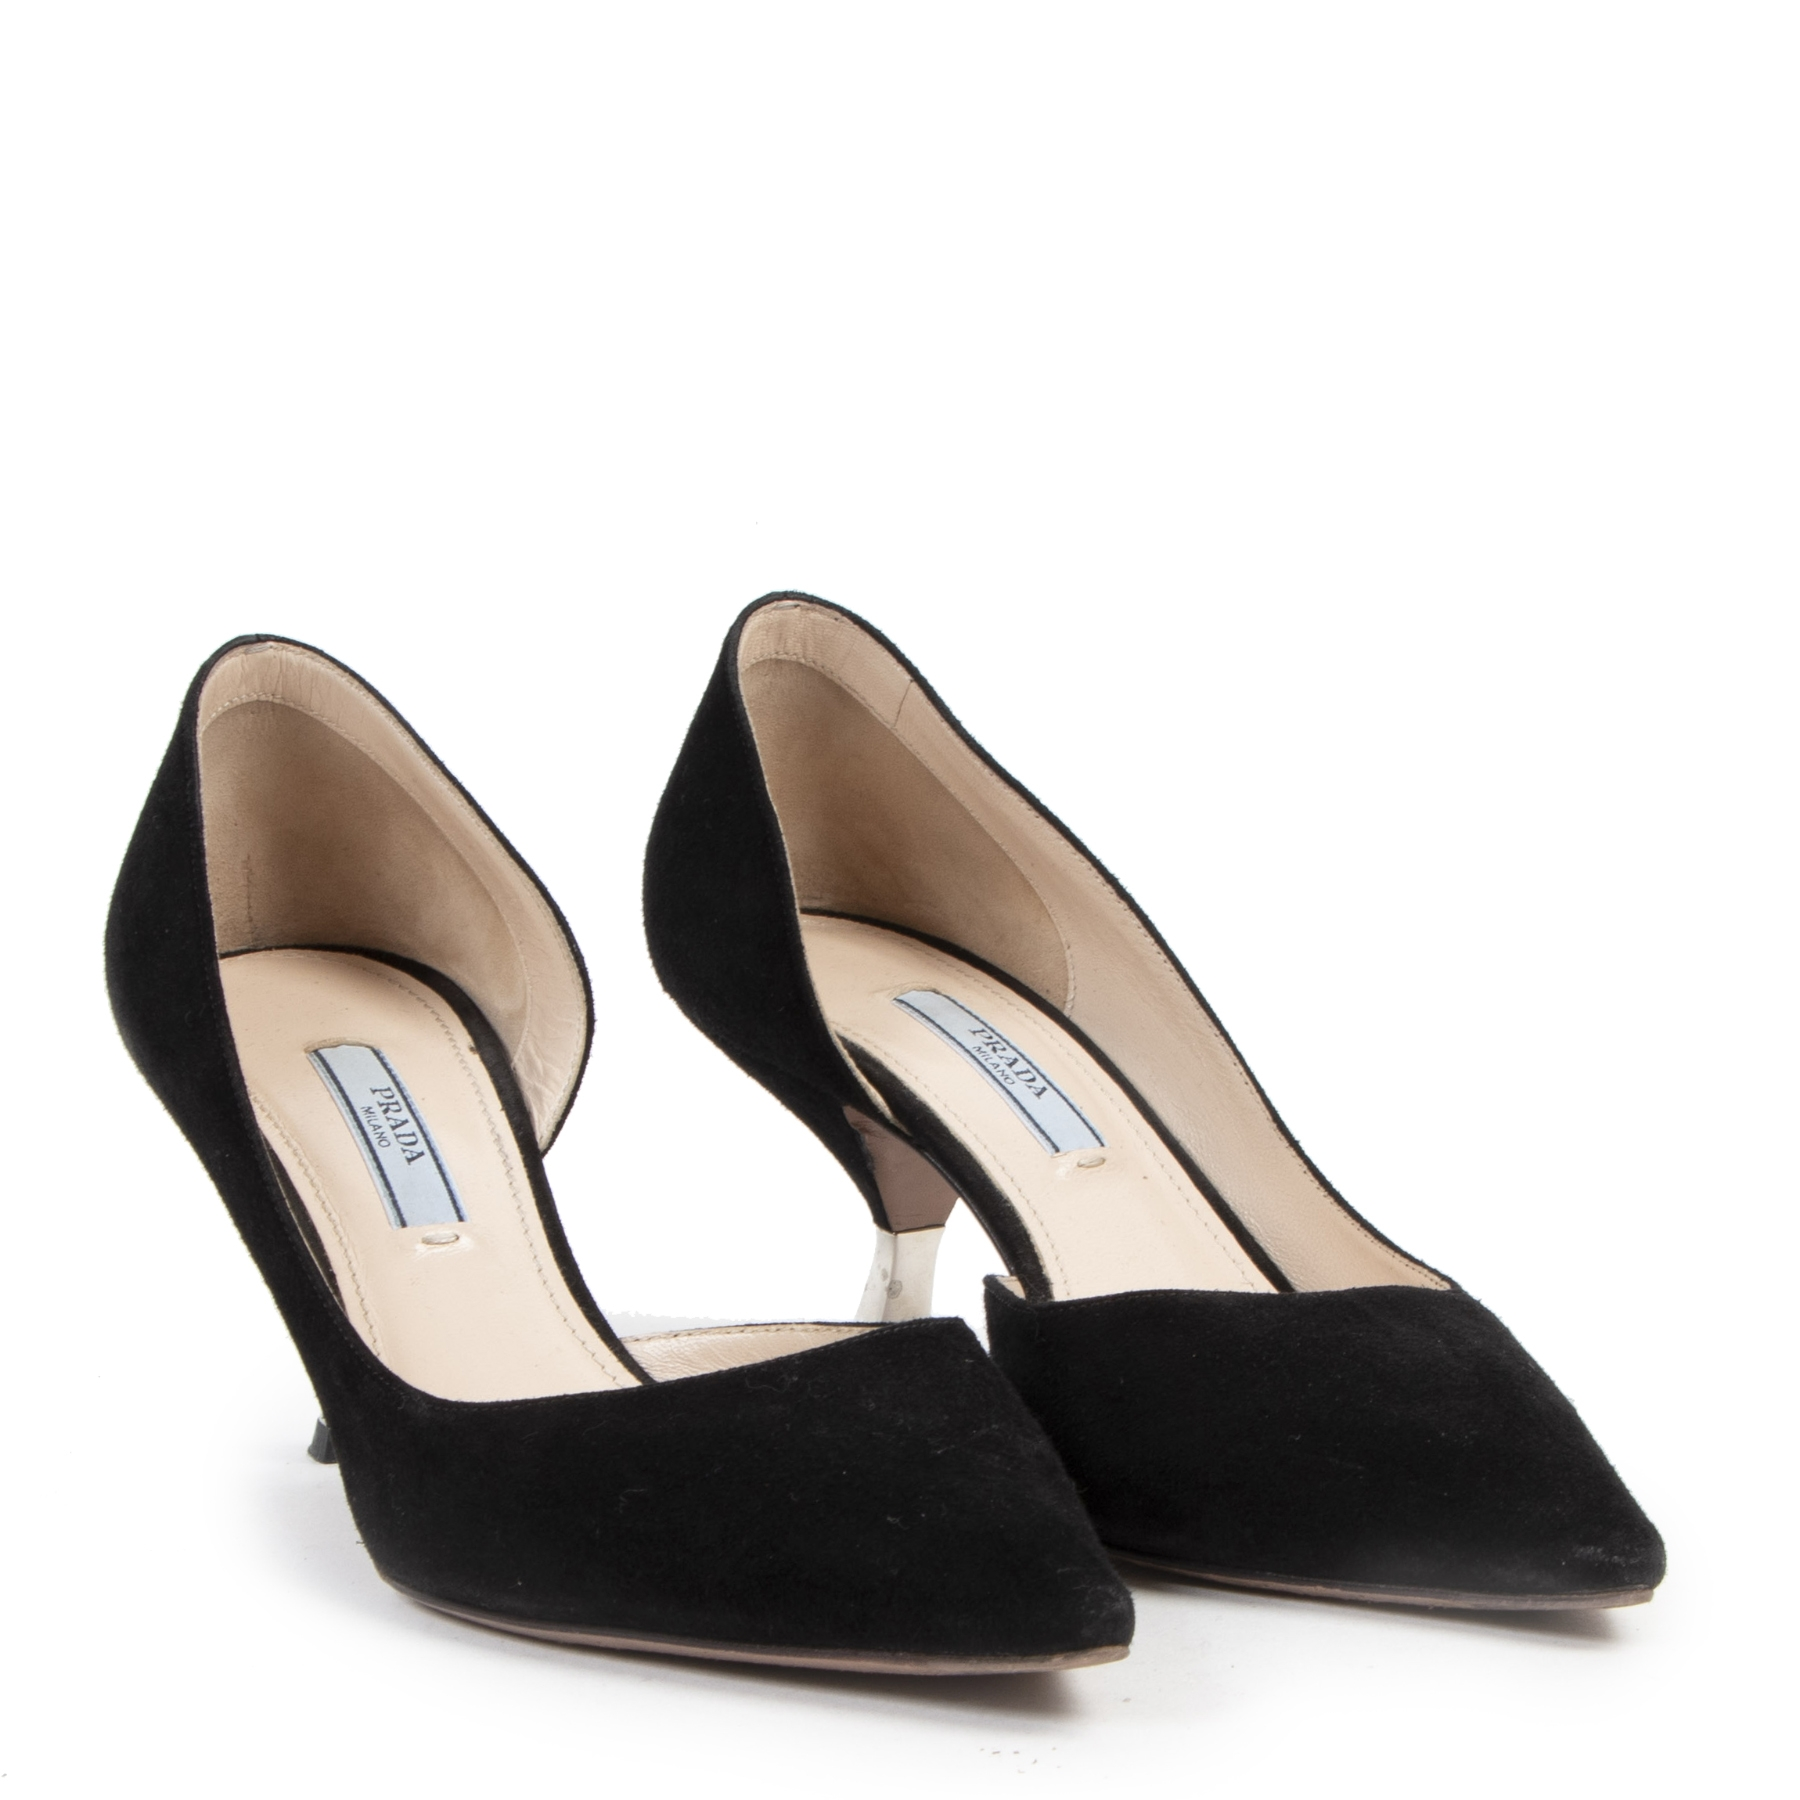 Authentique seconde-main vintage Prada Black Suede Heels - Size 37,5 achète en ligne webshop LabelLOV